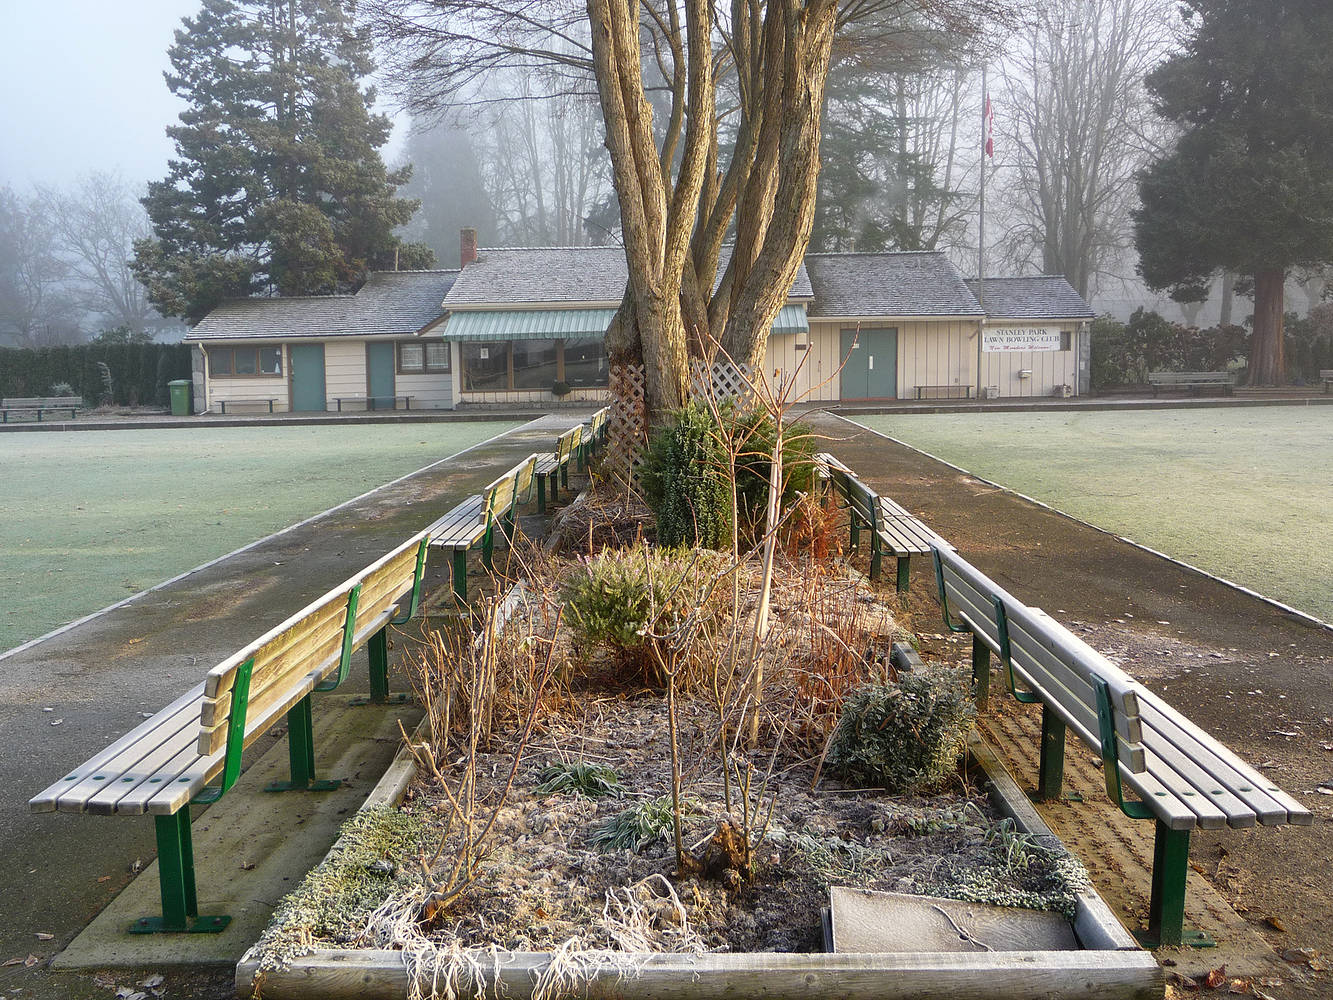 Stanley Park Lawn Bowling Club by Jim Friesen